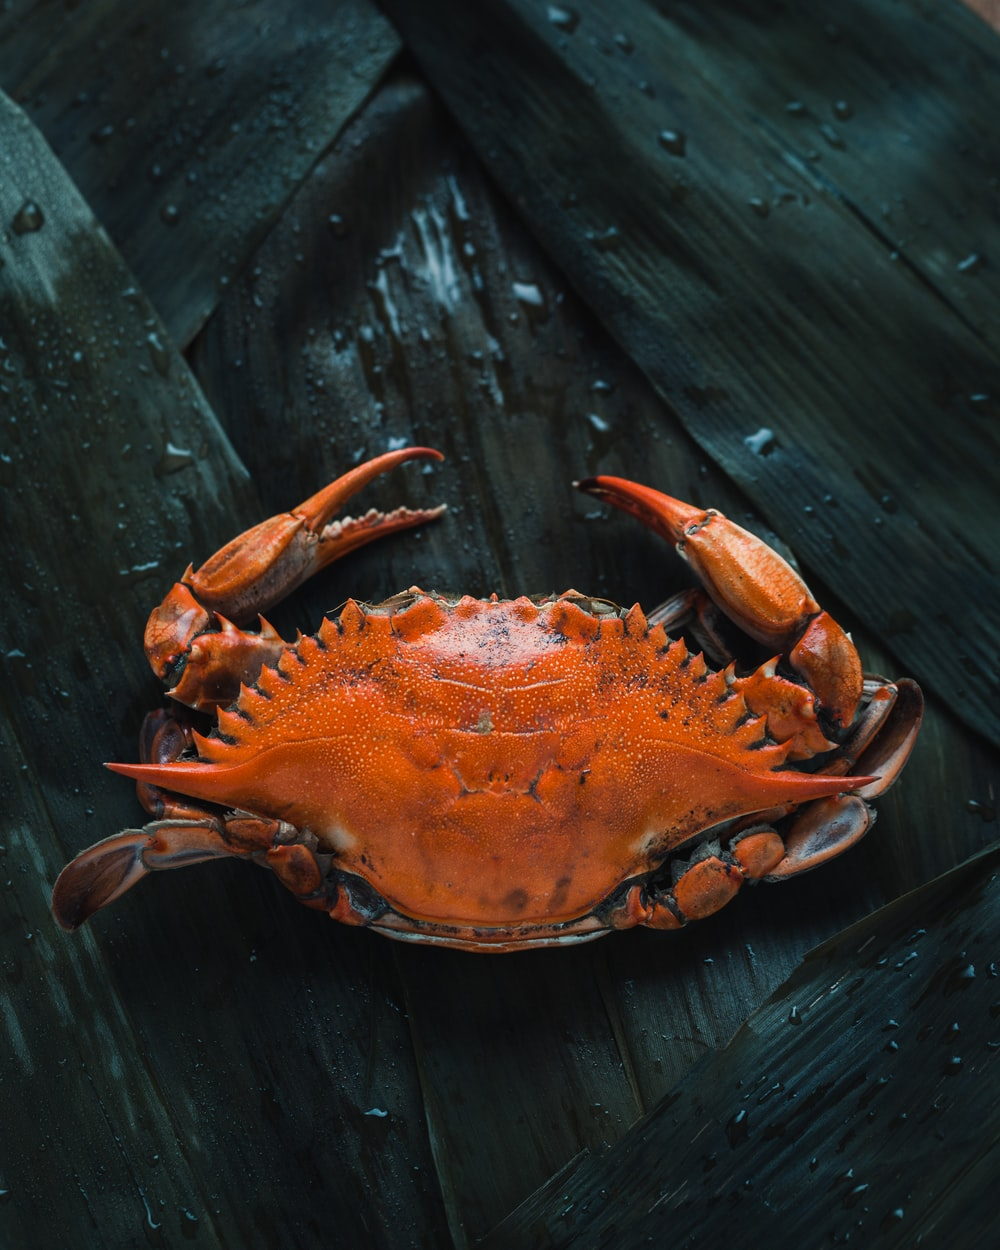 brown crab on brown surface